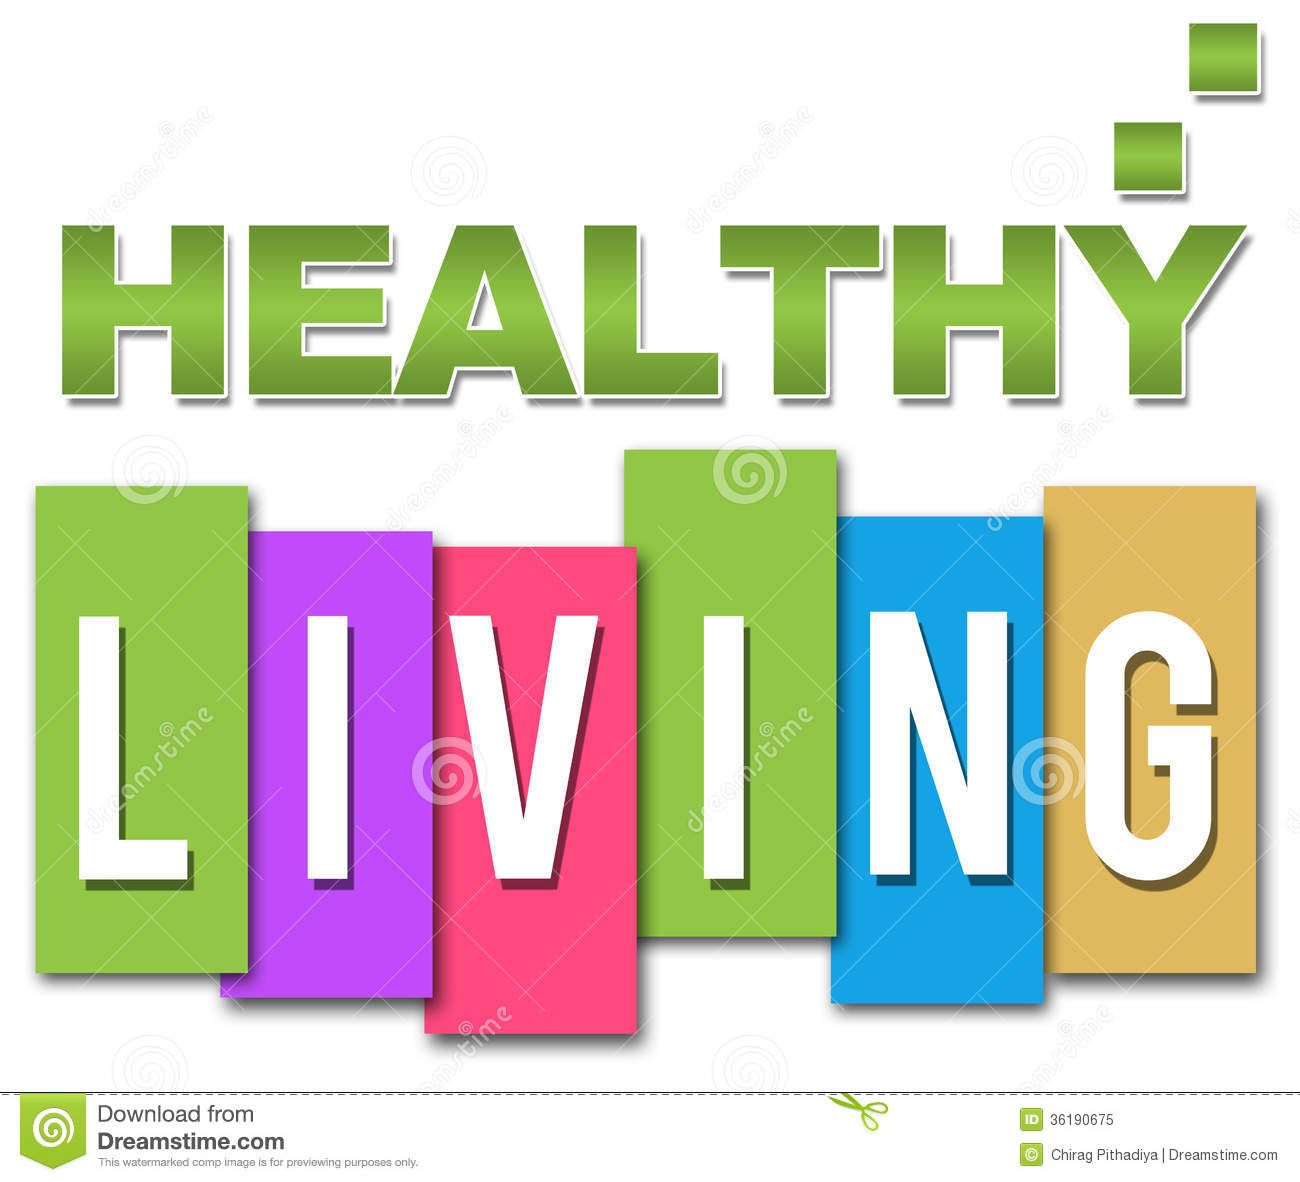 Healthy living clipart clip library library Free Clip Art Healthy Living | Healthy Living | Healthy ... clip library library